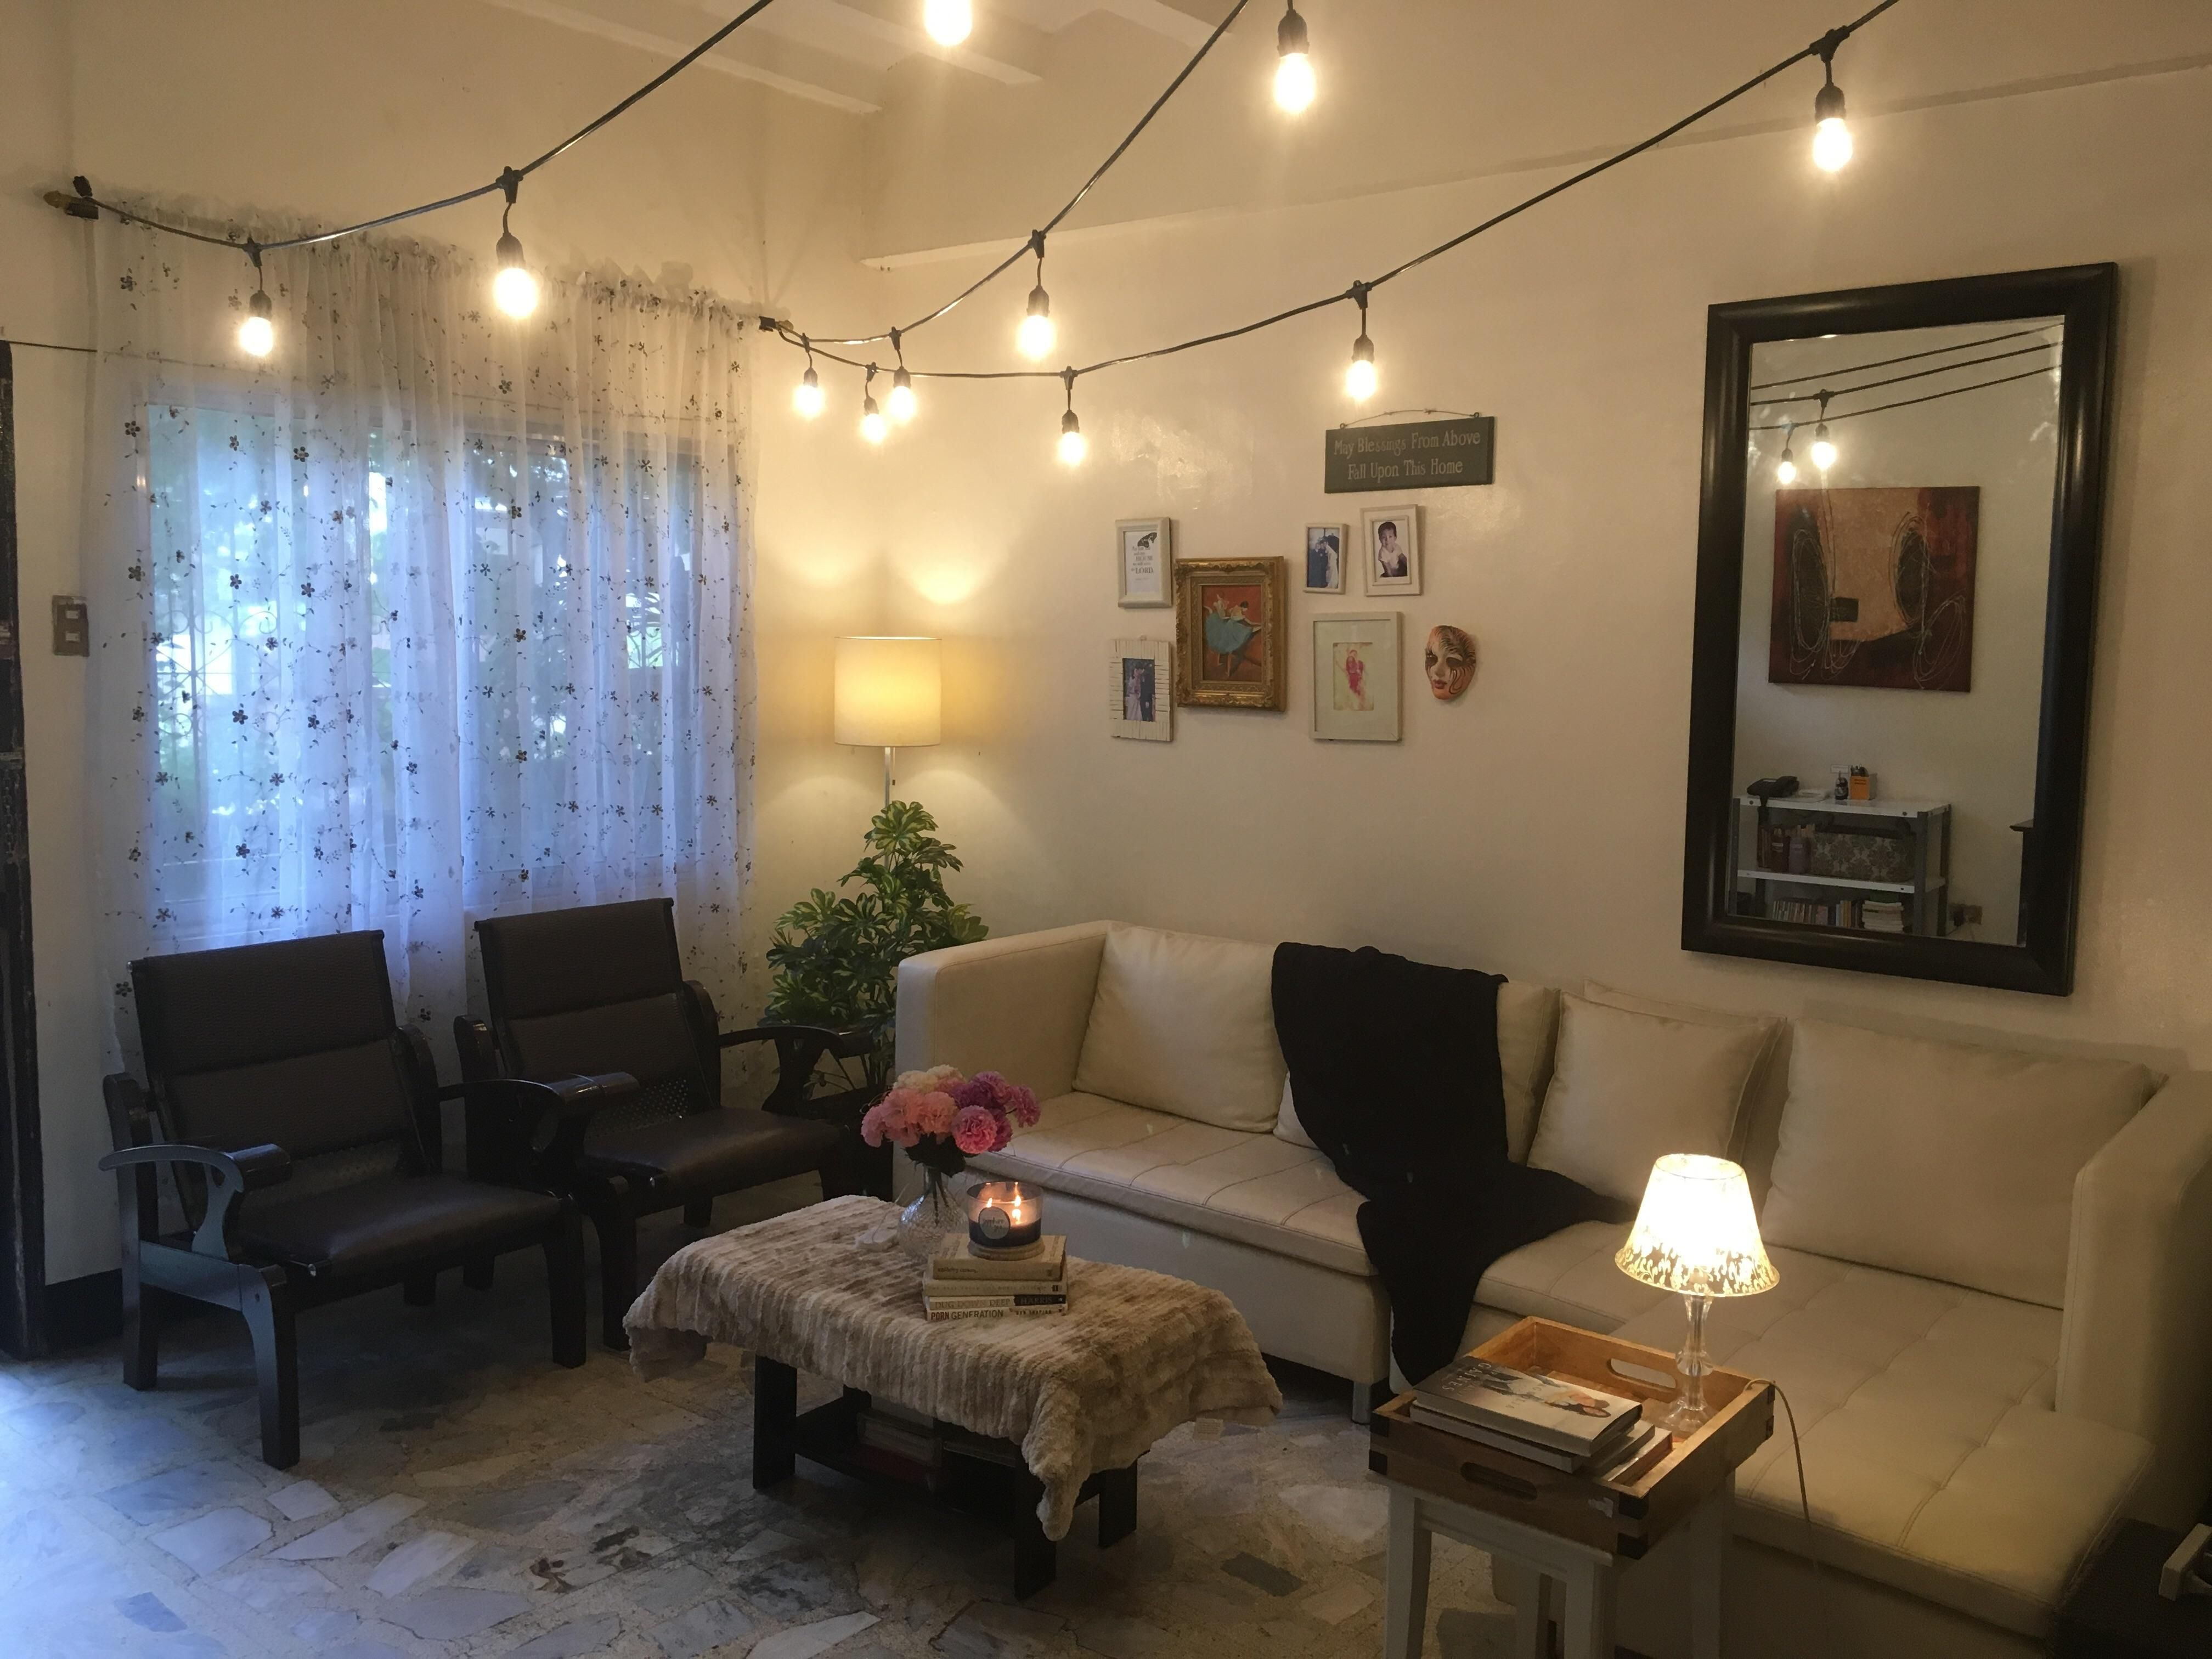 Fairy Lights In Living Room Living Room Decor Apartment First